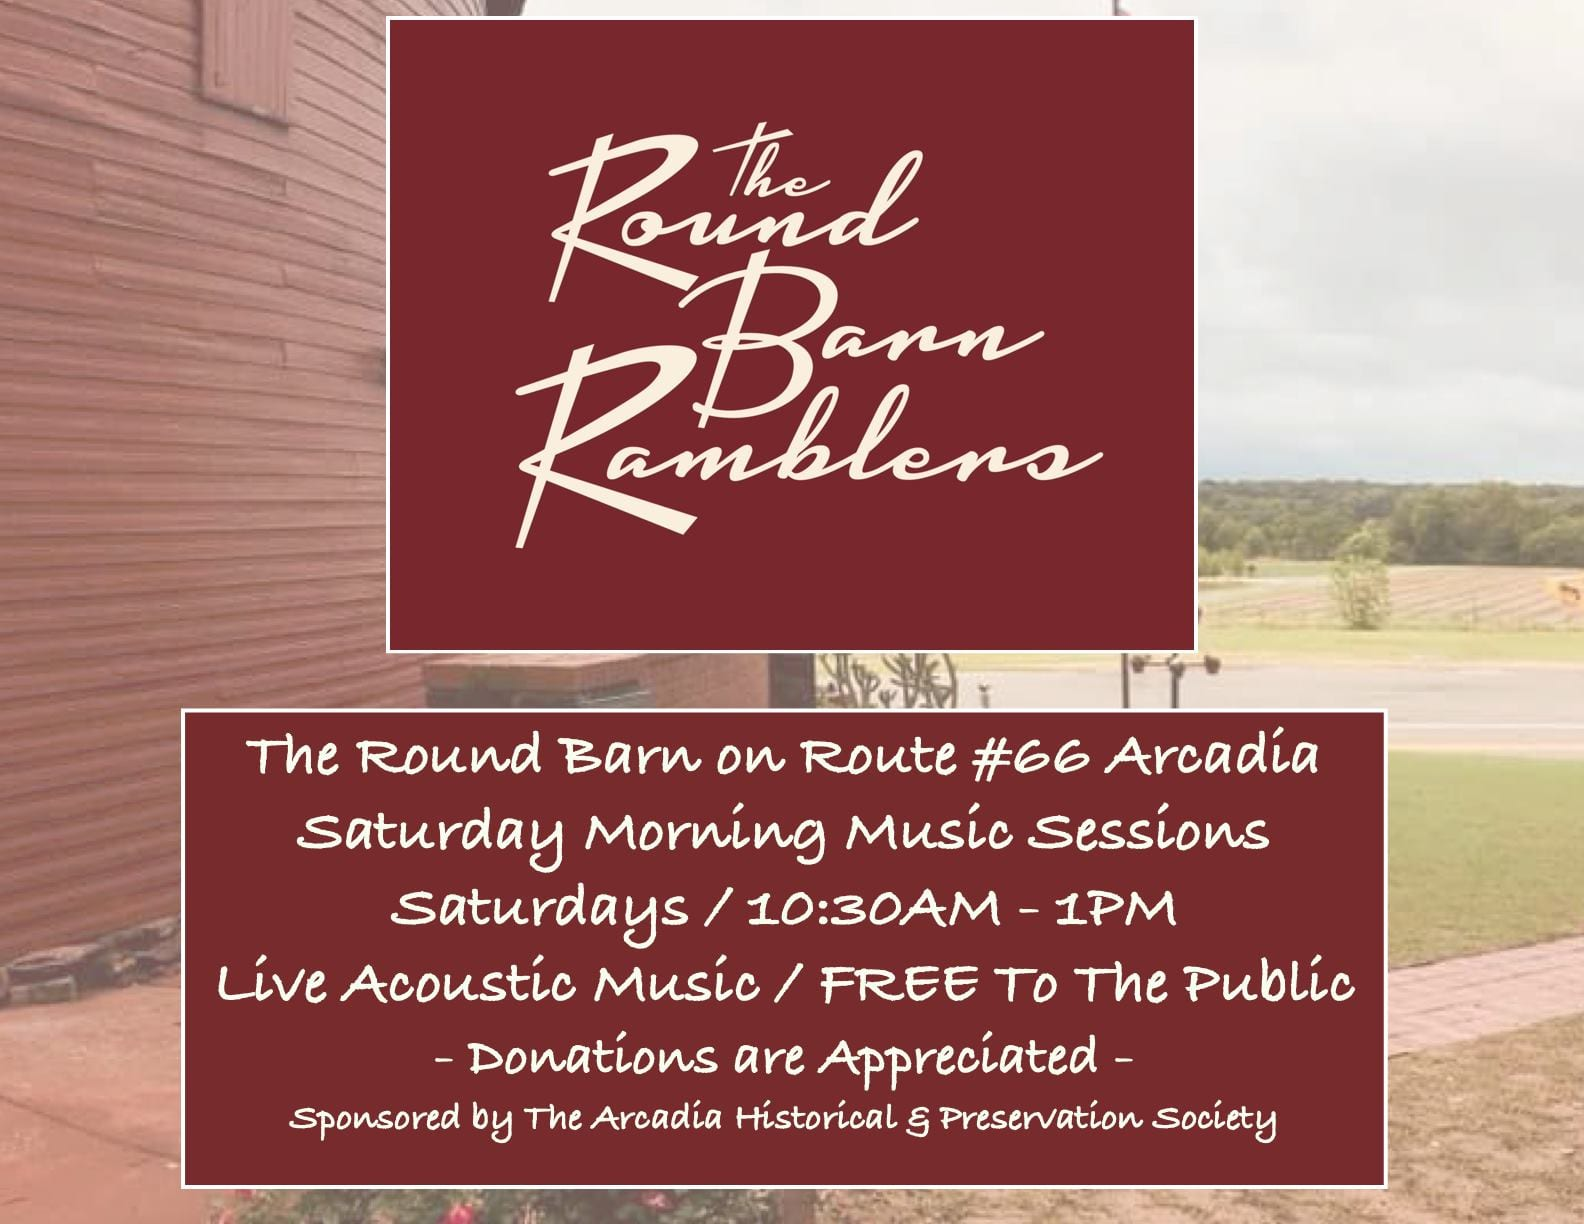 The Round Barn Ramblers - Weekly Live Music Acoustic Sessions - Arcadia Round Barn Oklahoma Route 66